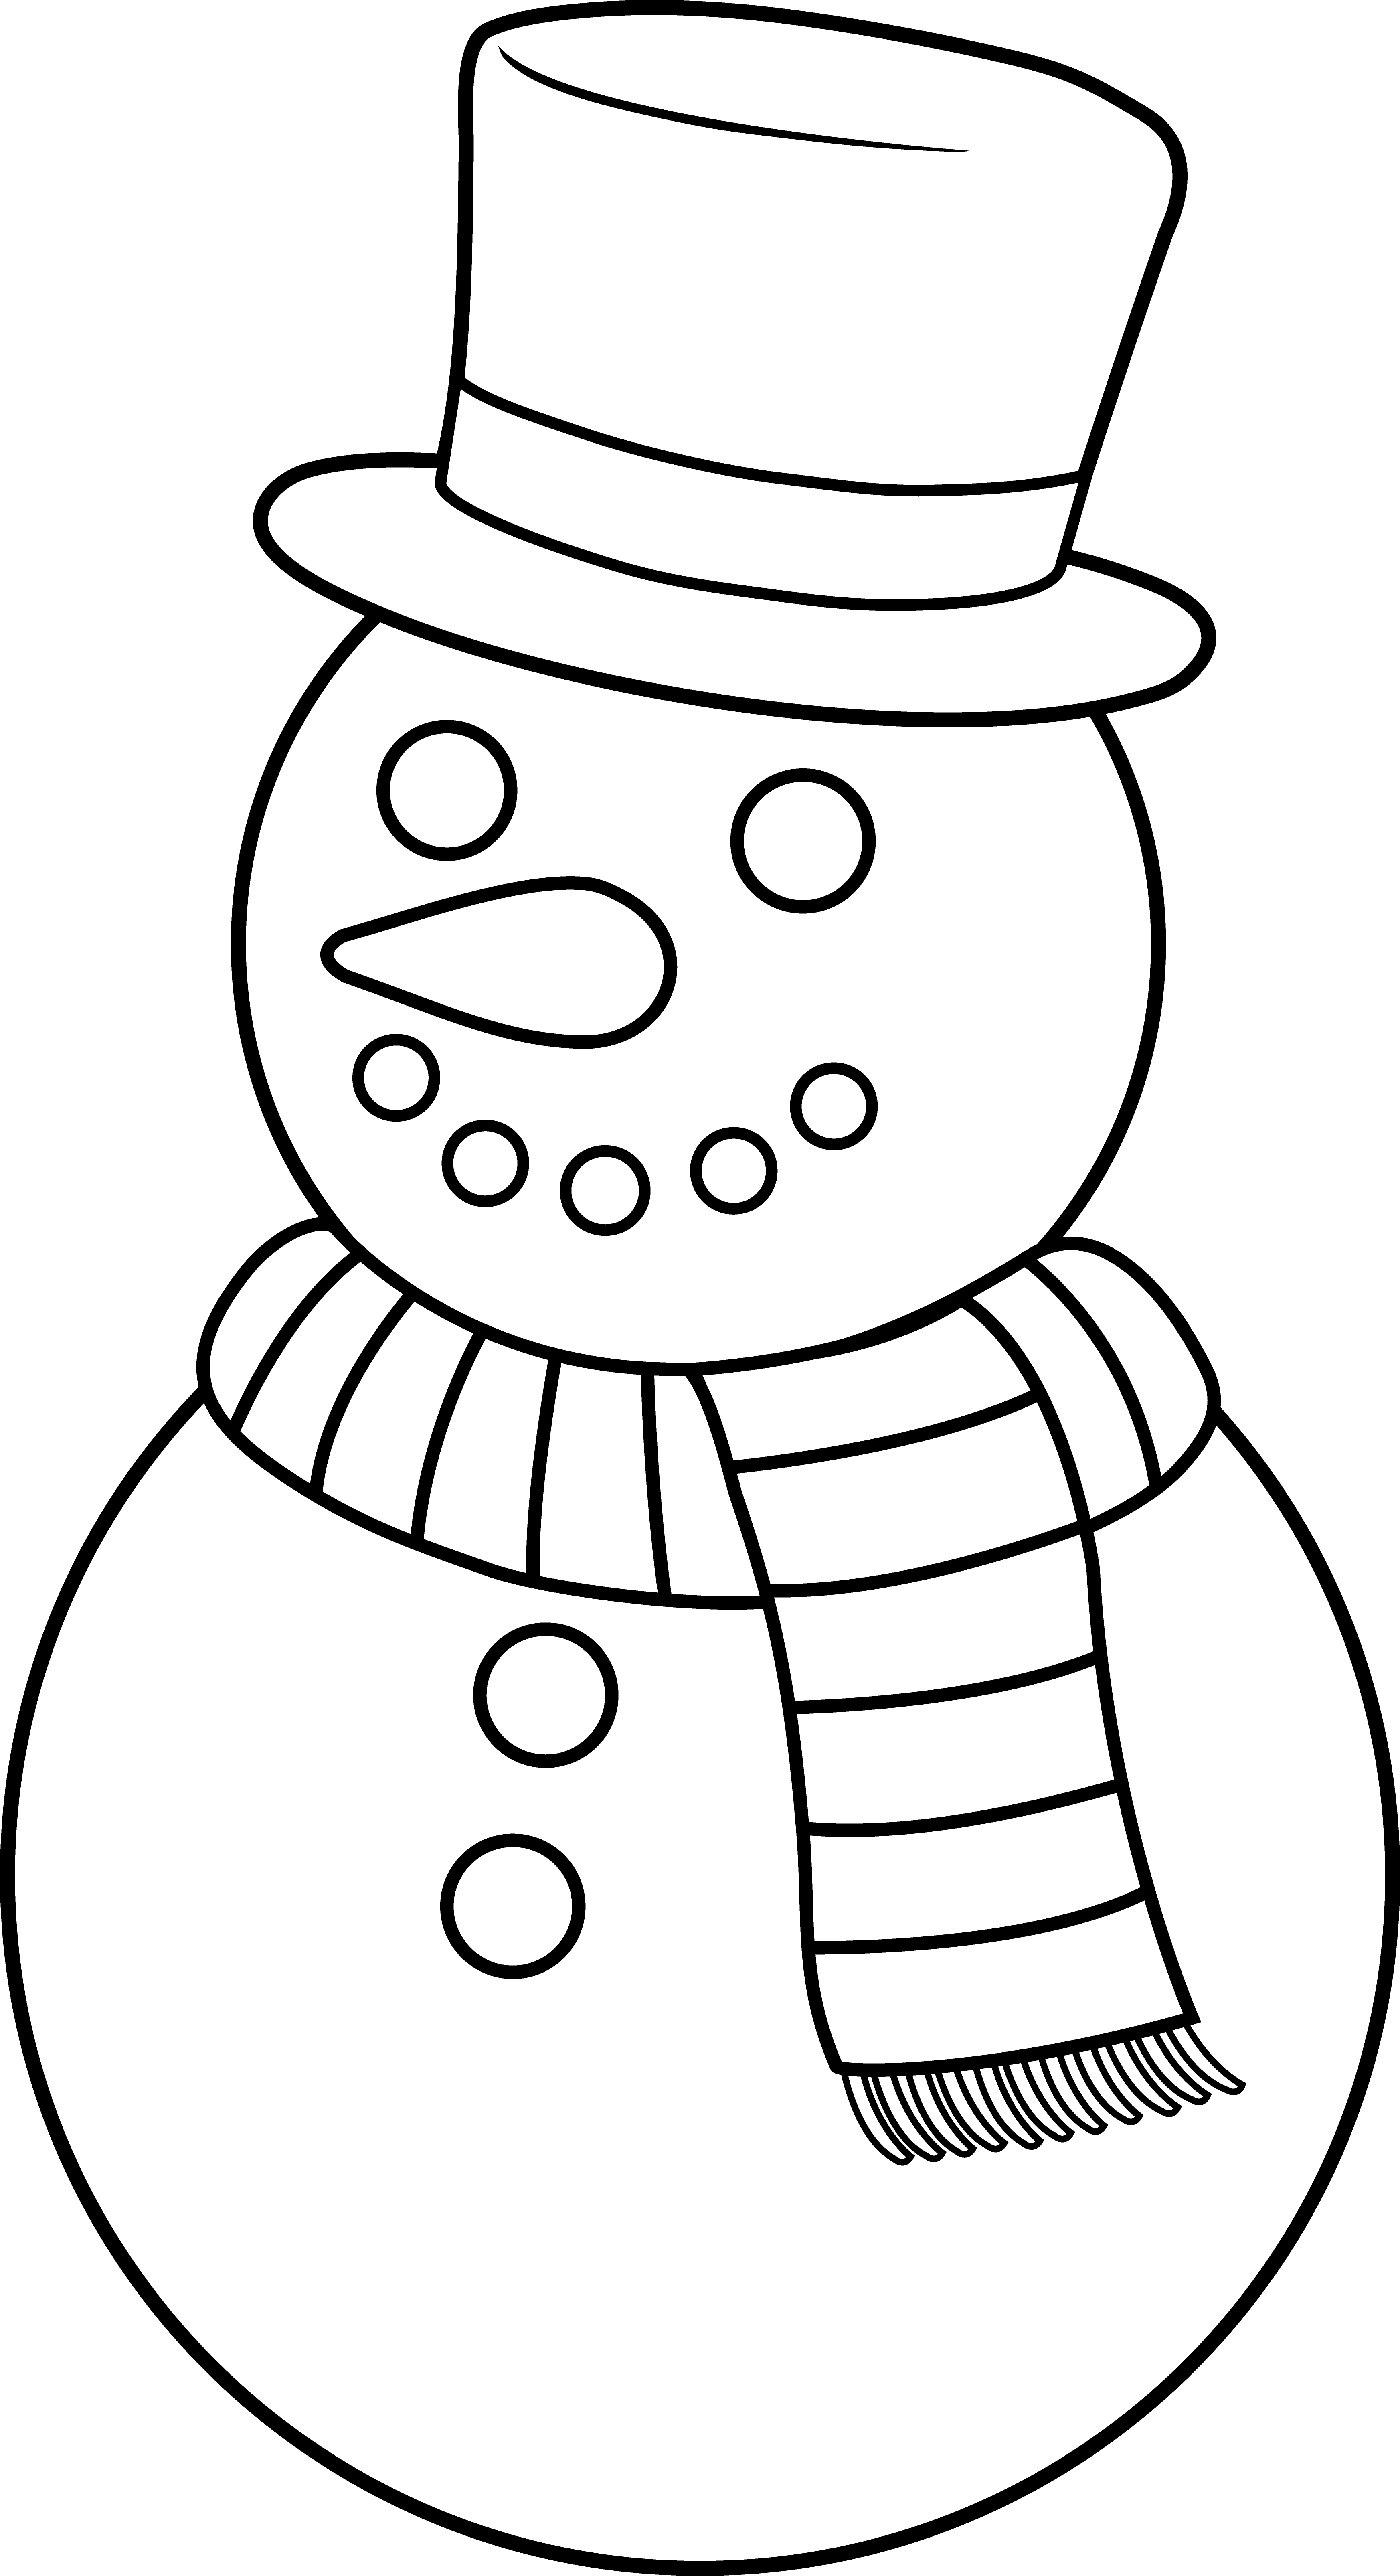 Colorable christmas snowman free. Fedora clipart snow man vector royalty free stock